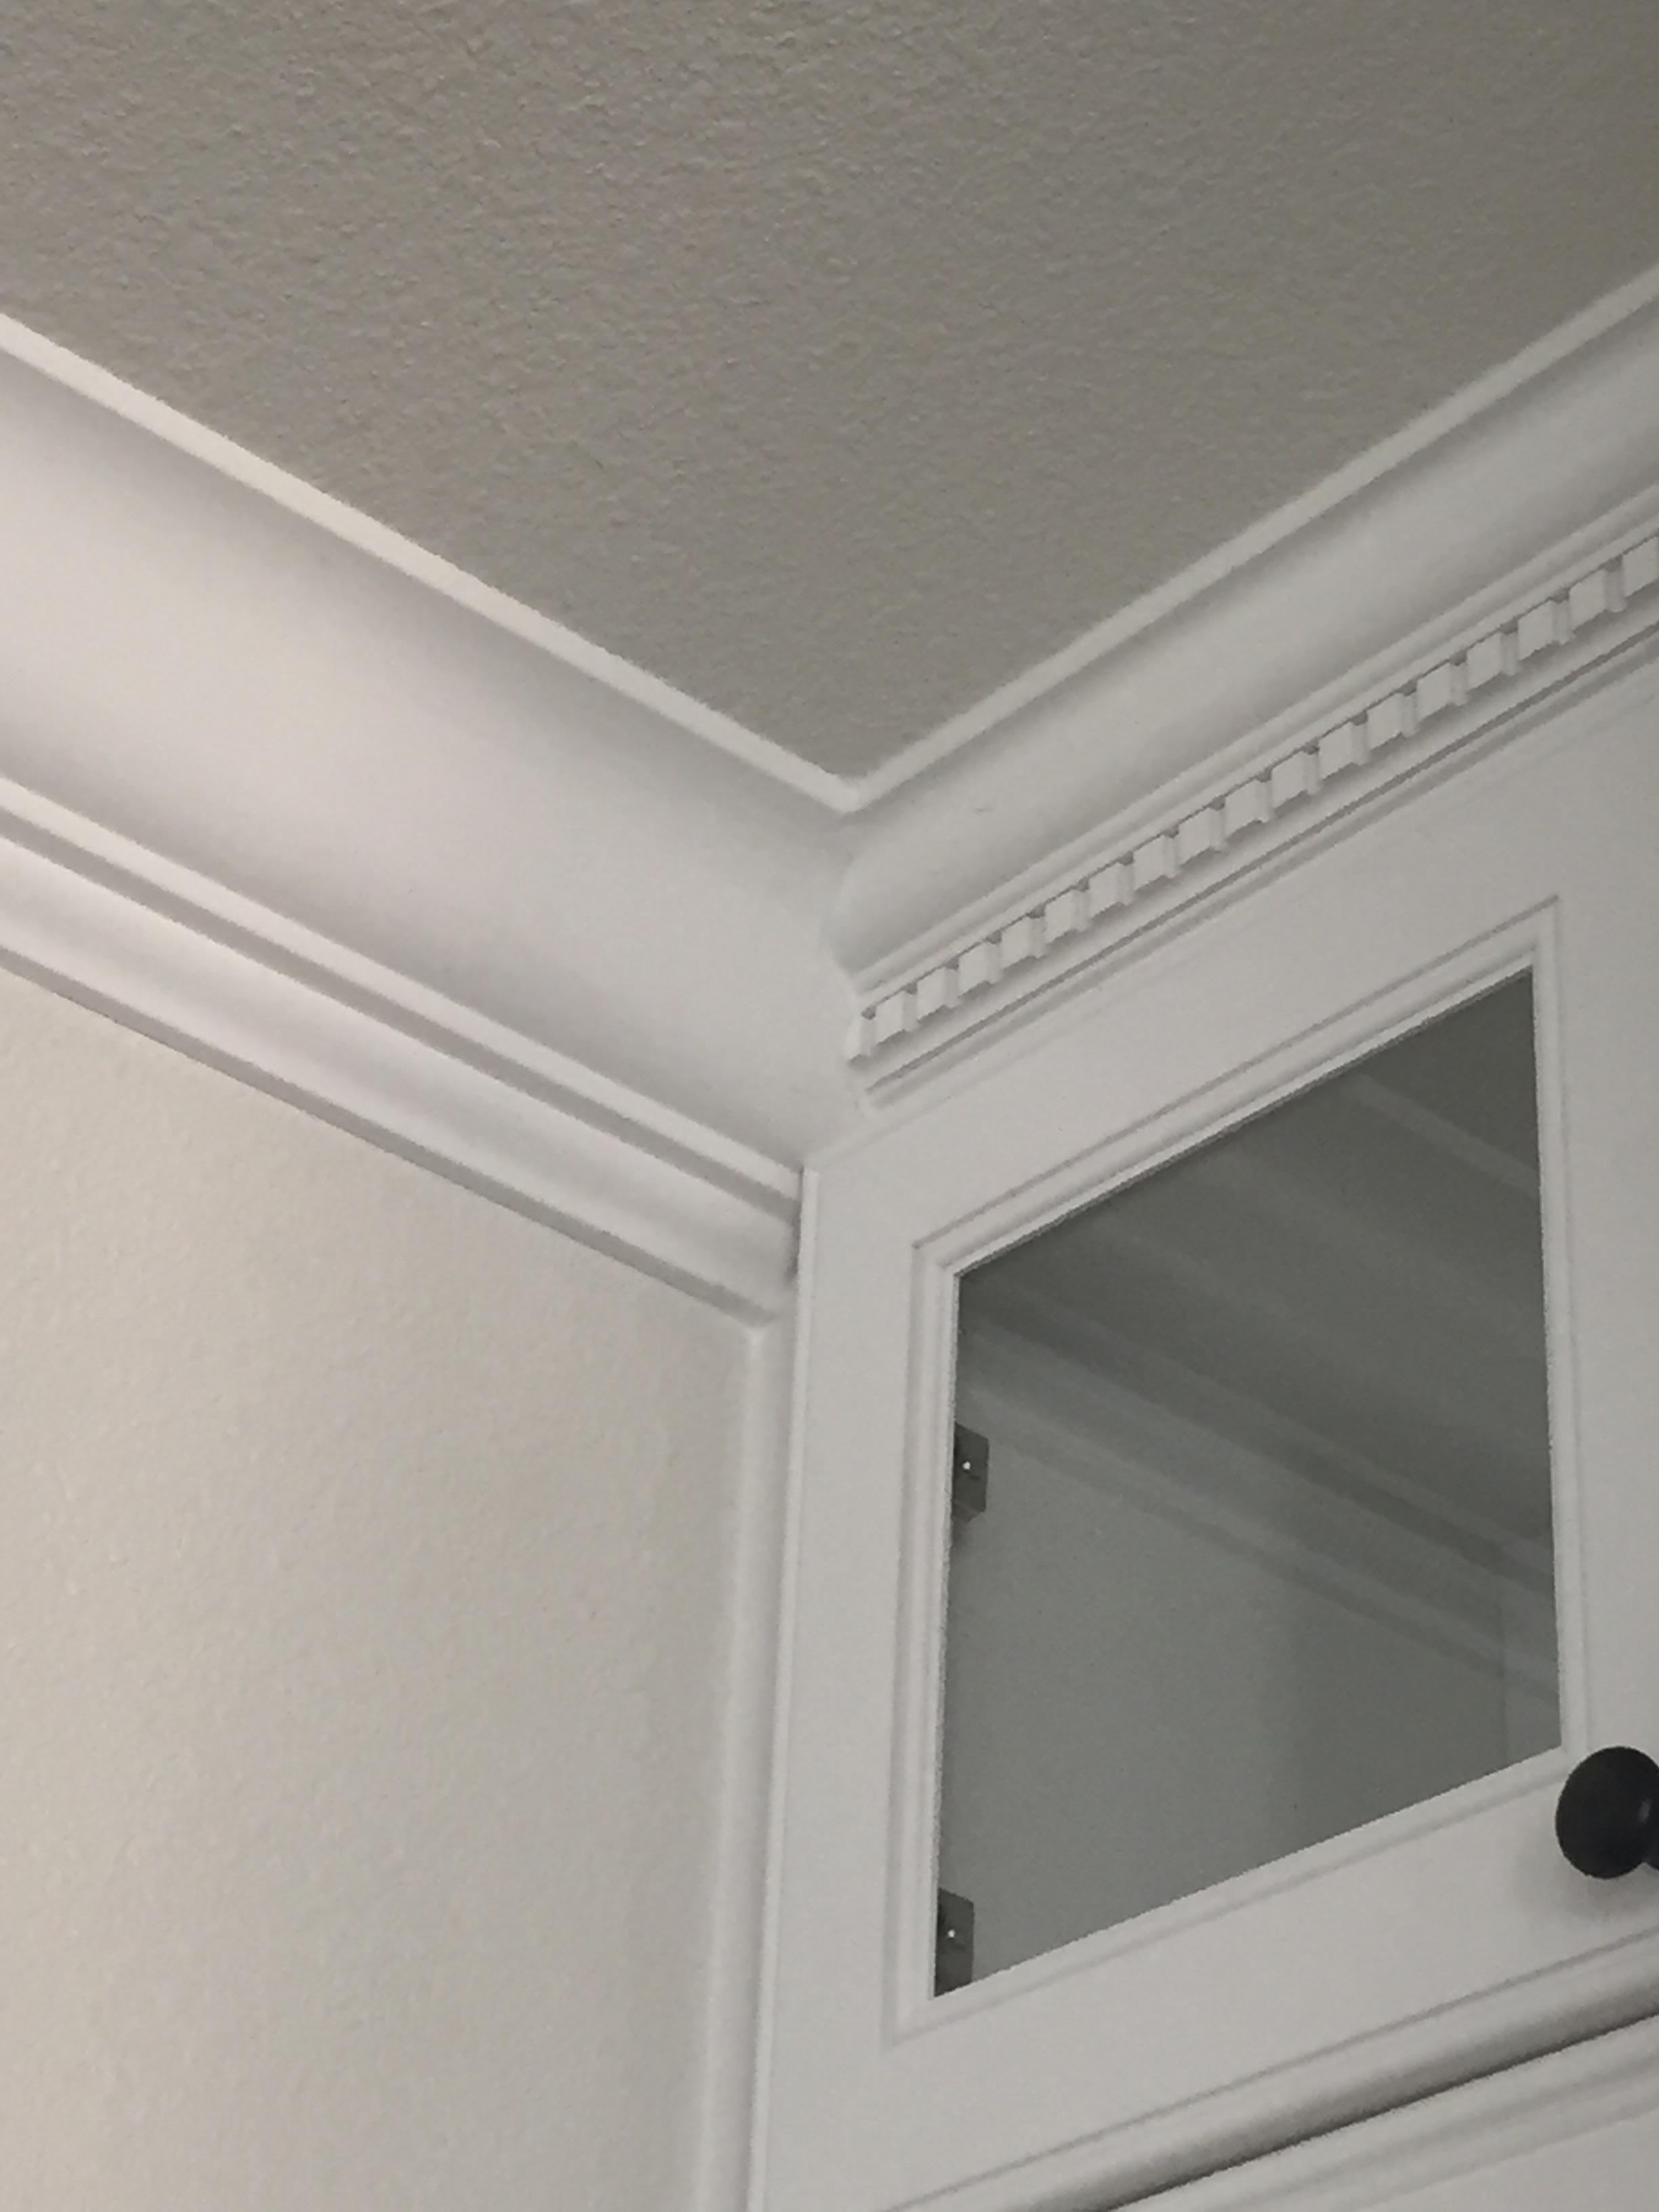 Joining 2 different crown moldings-image_1441998398154.jpg